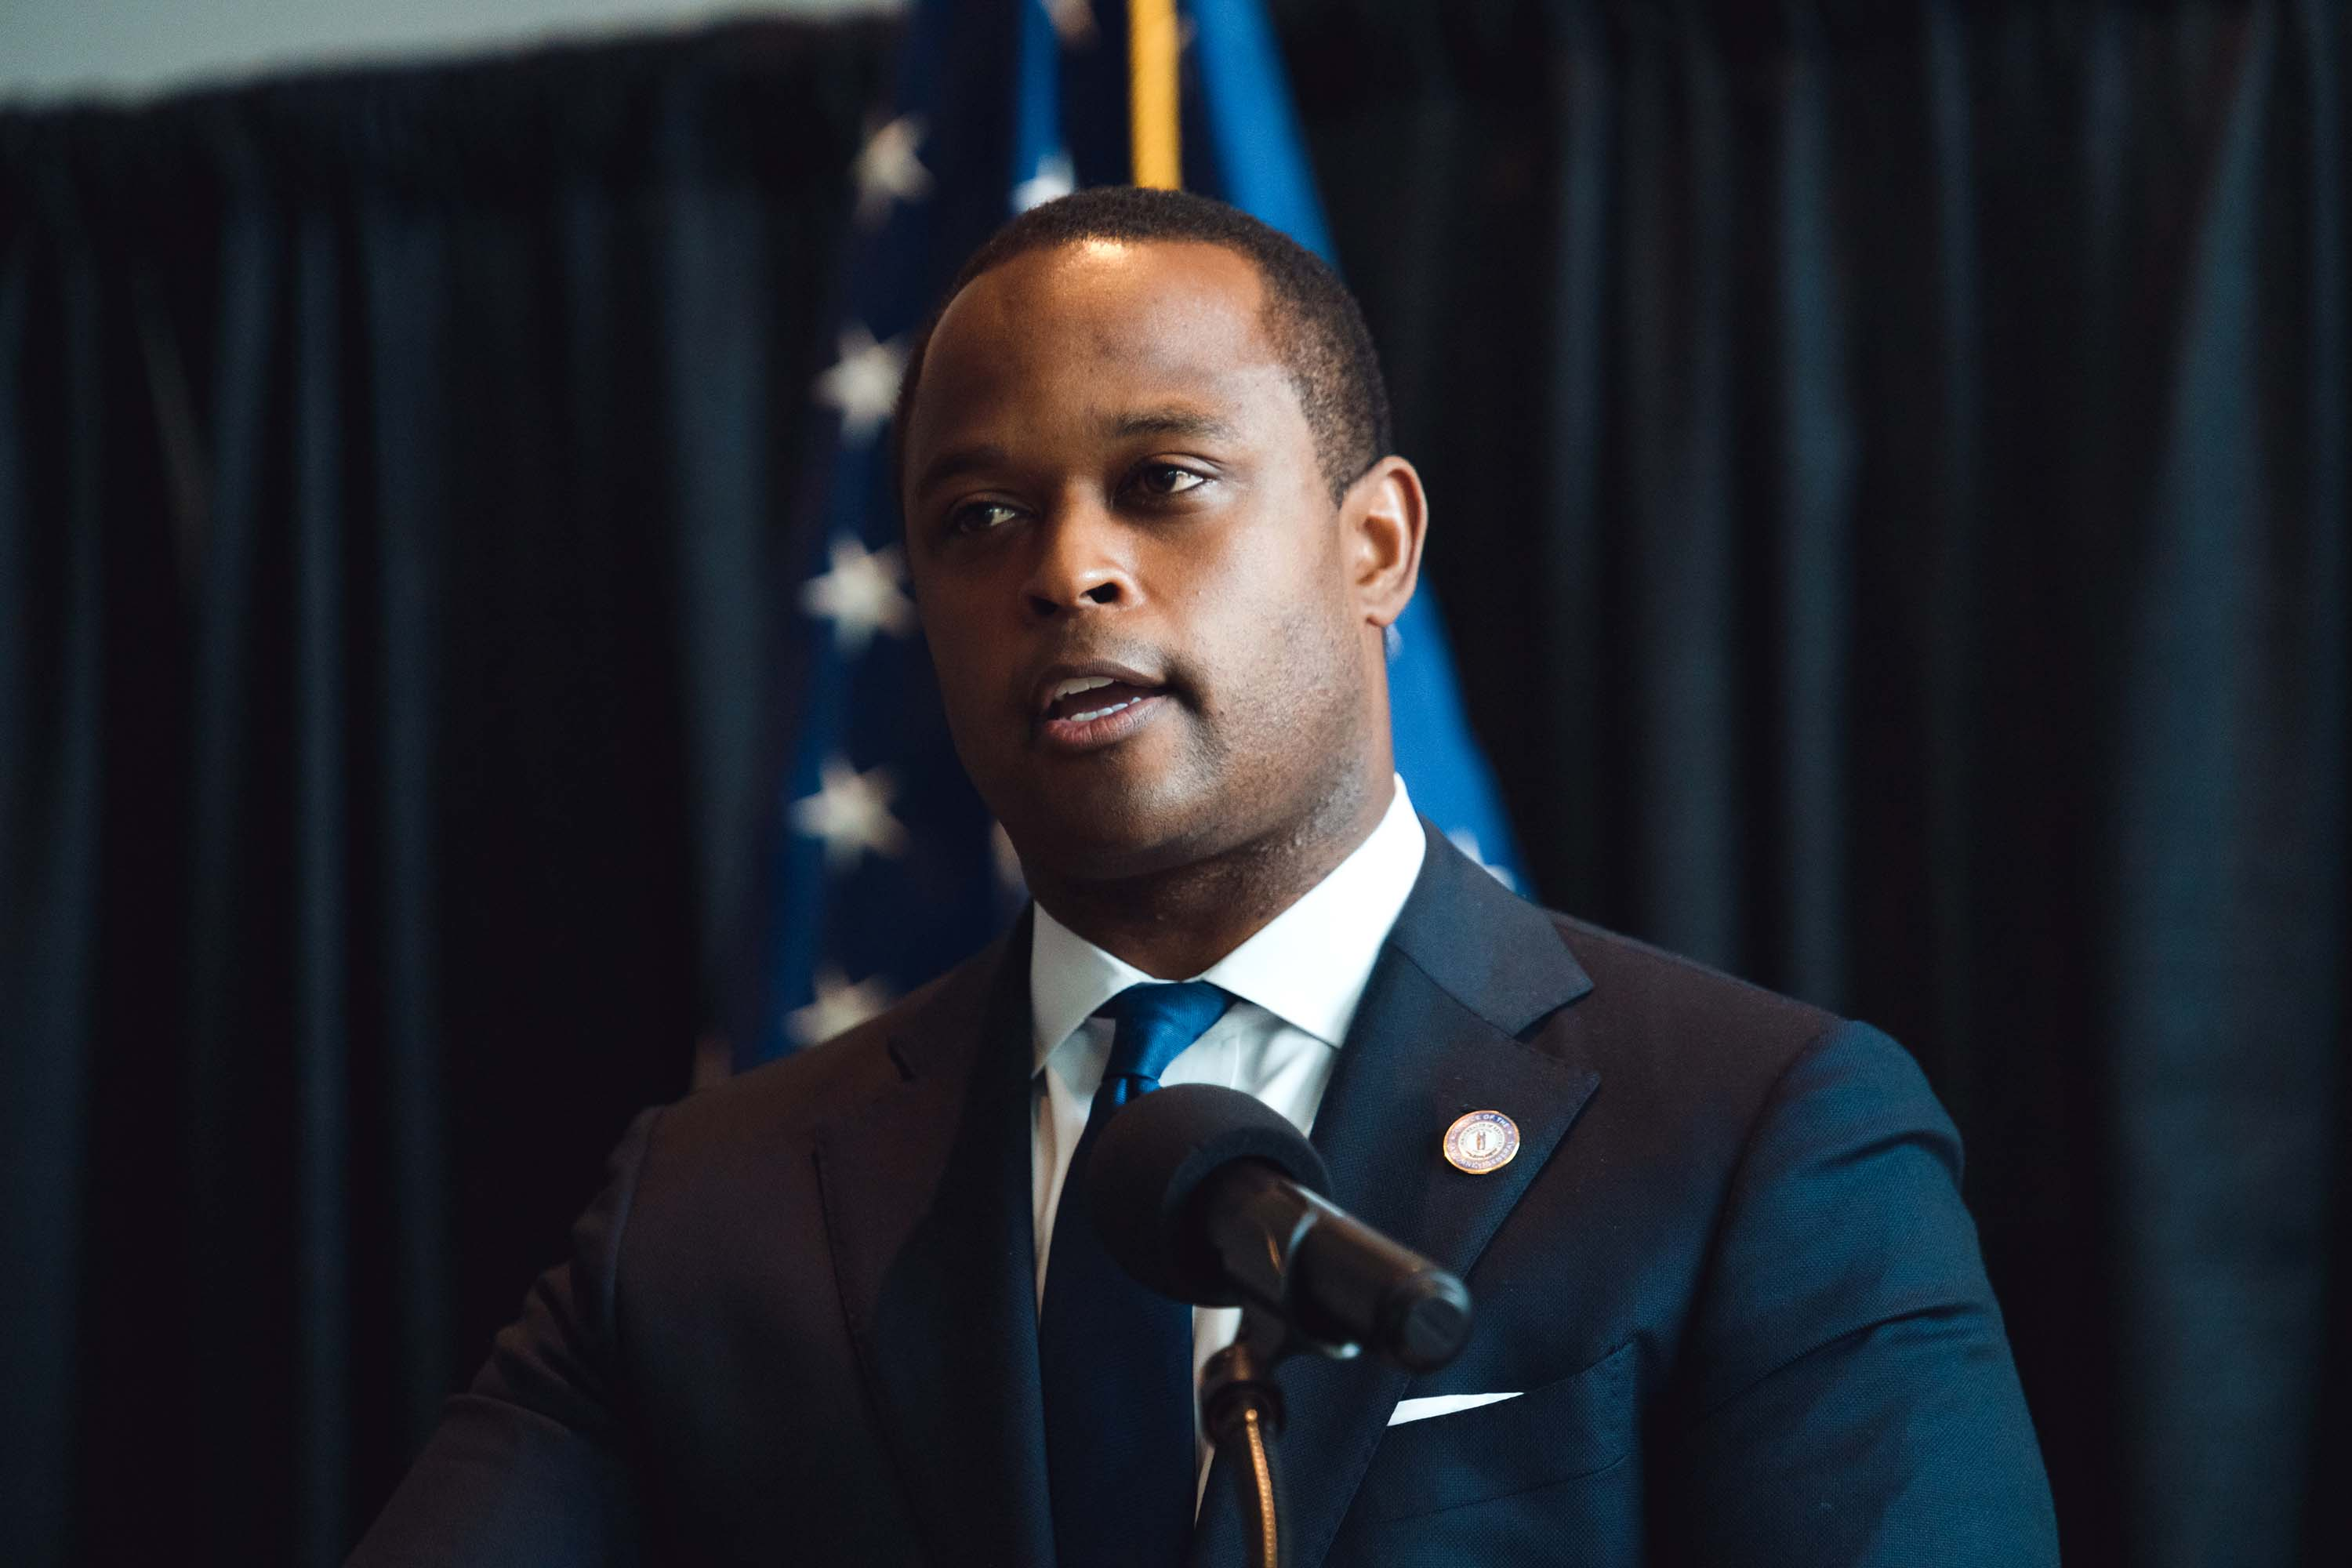 Kentucky Attorney General Daniel Cameron speaks during a press conference in Frankfort, Kentucky on September 23, following the return of a grand jury investigation into the death of Breonna Taylor.